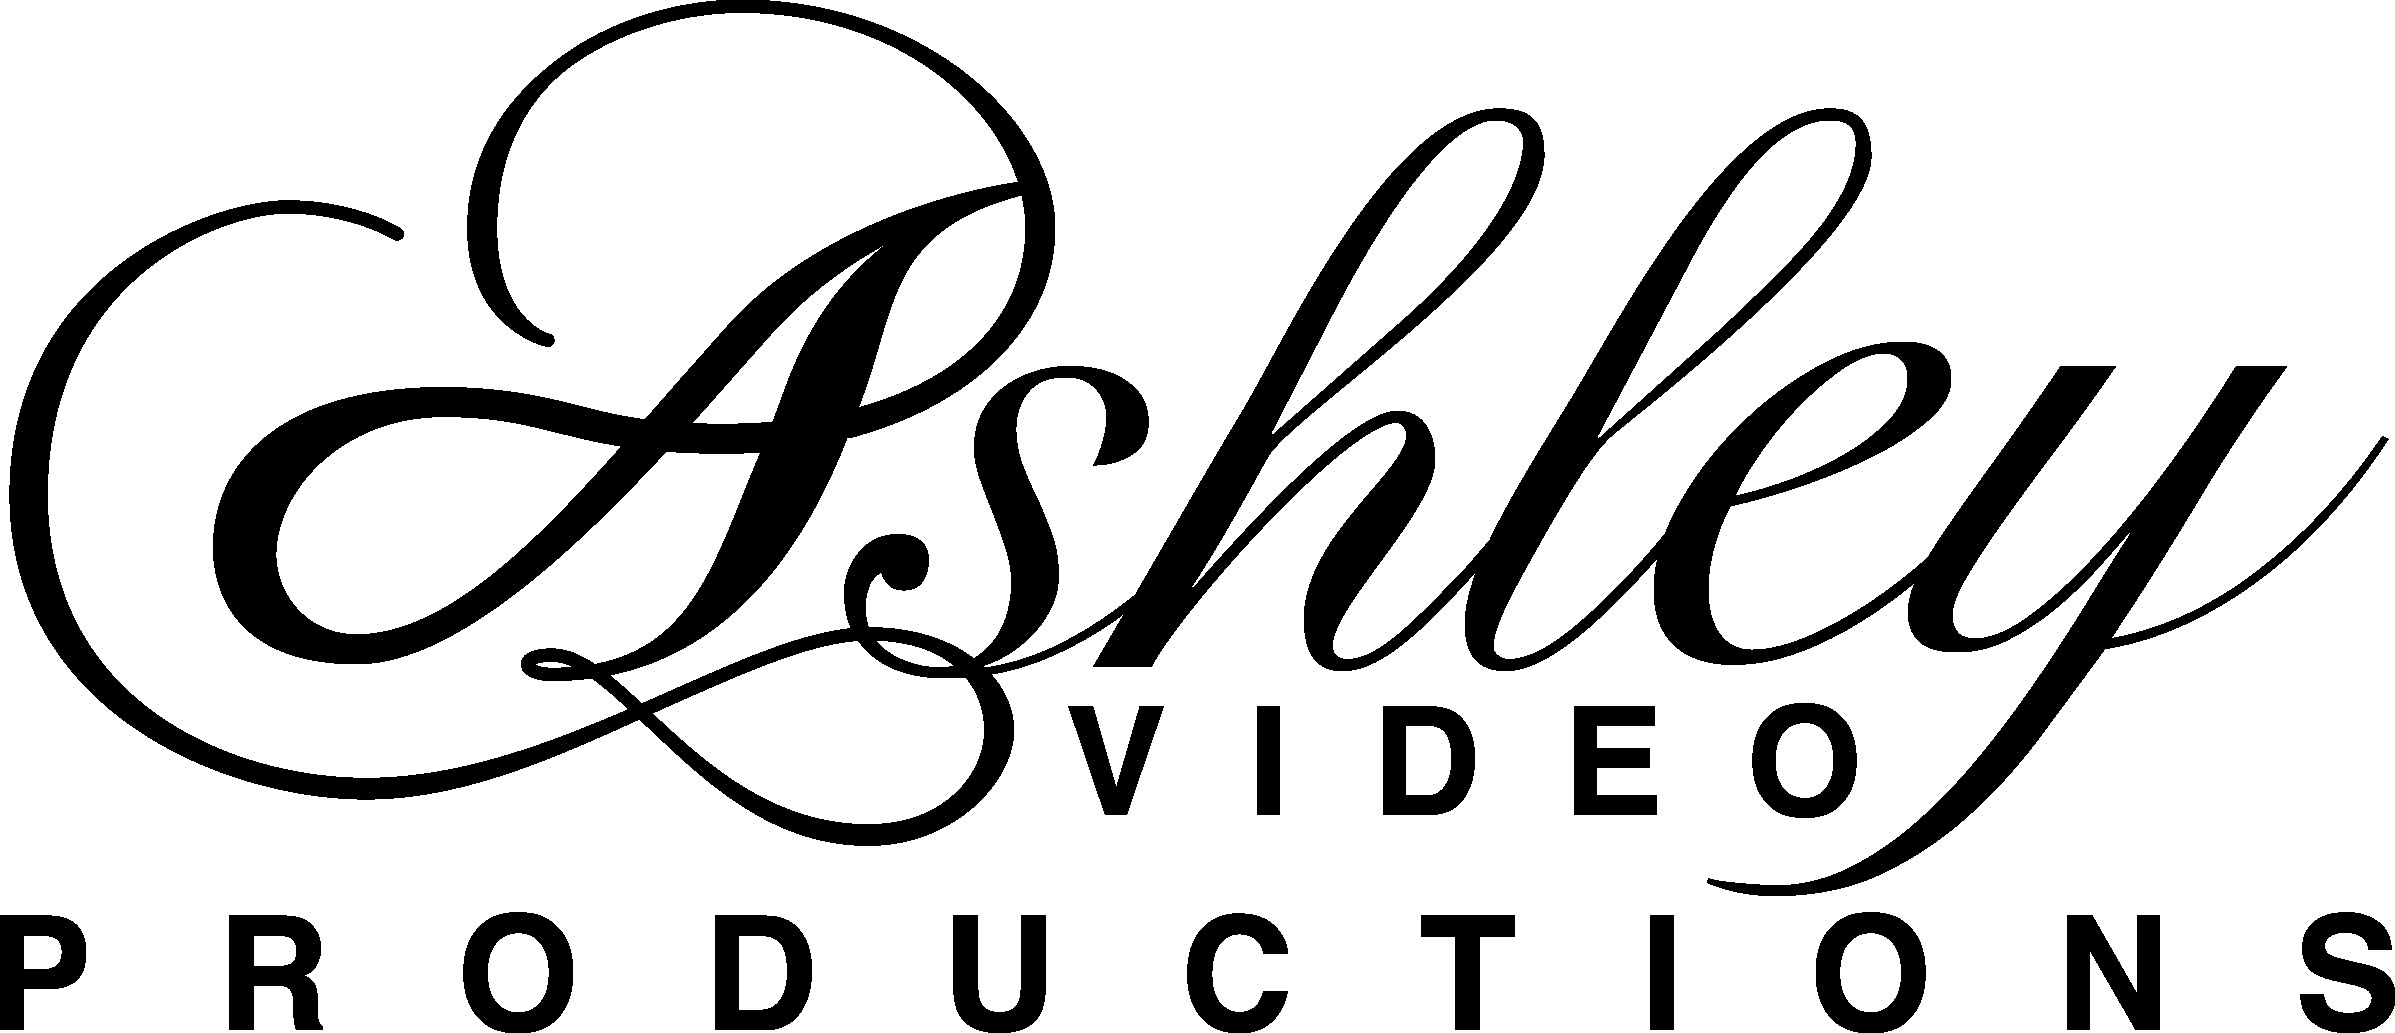 southern california video production company logo